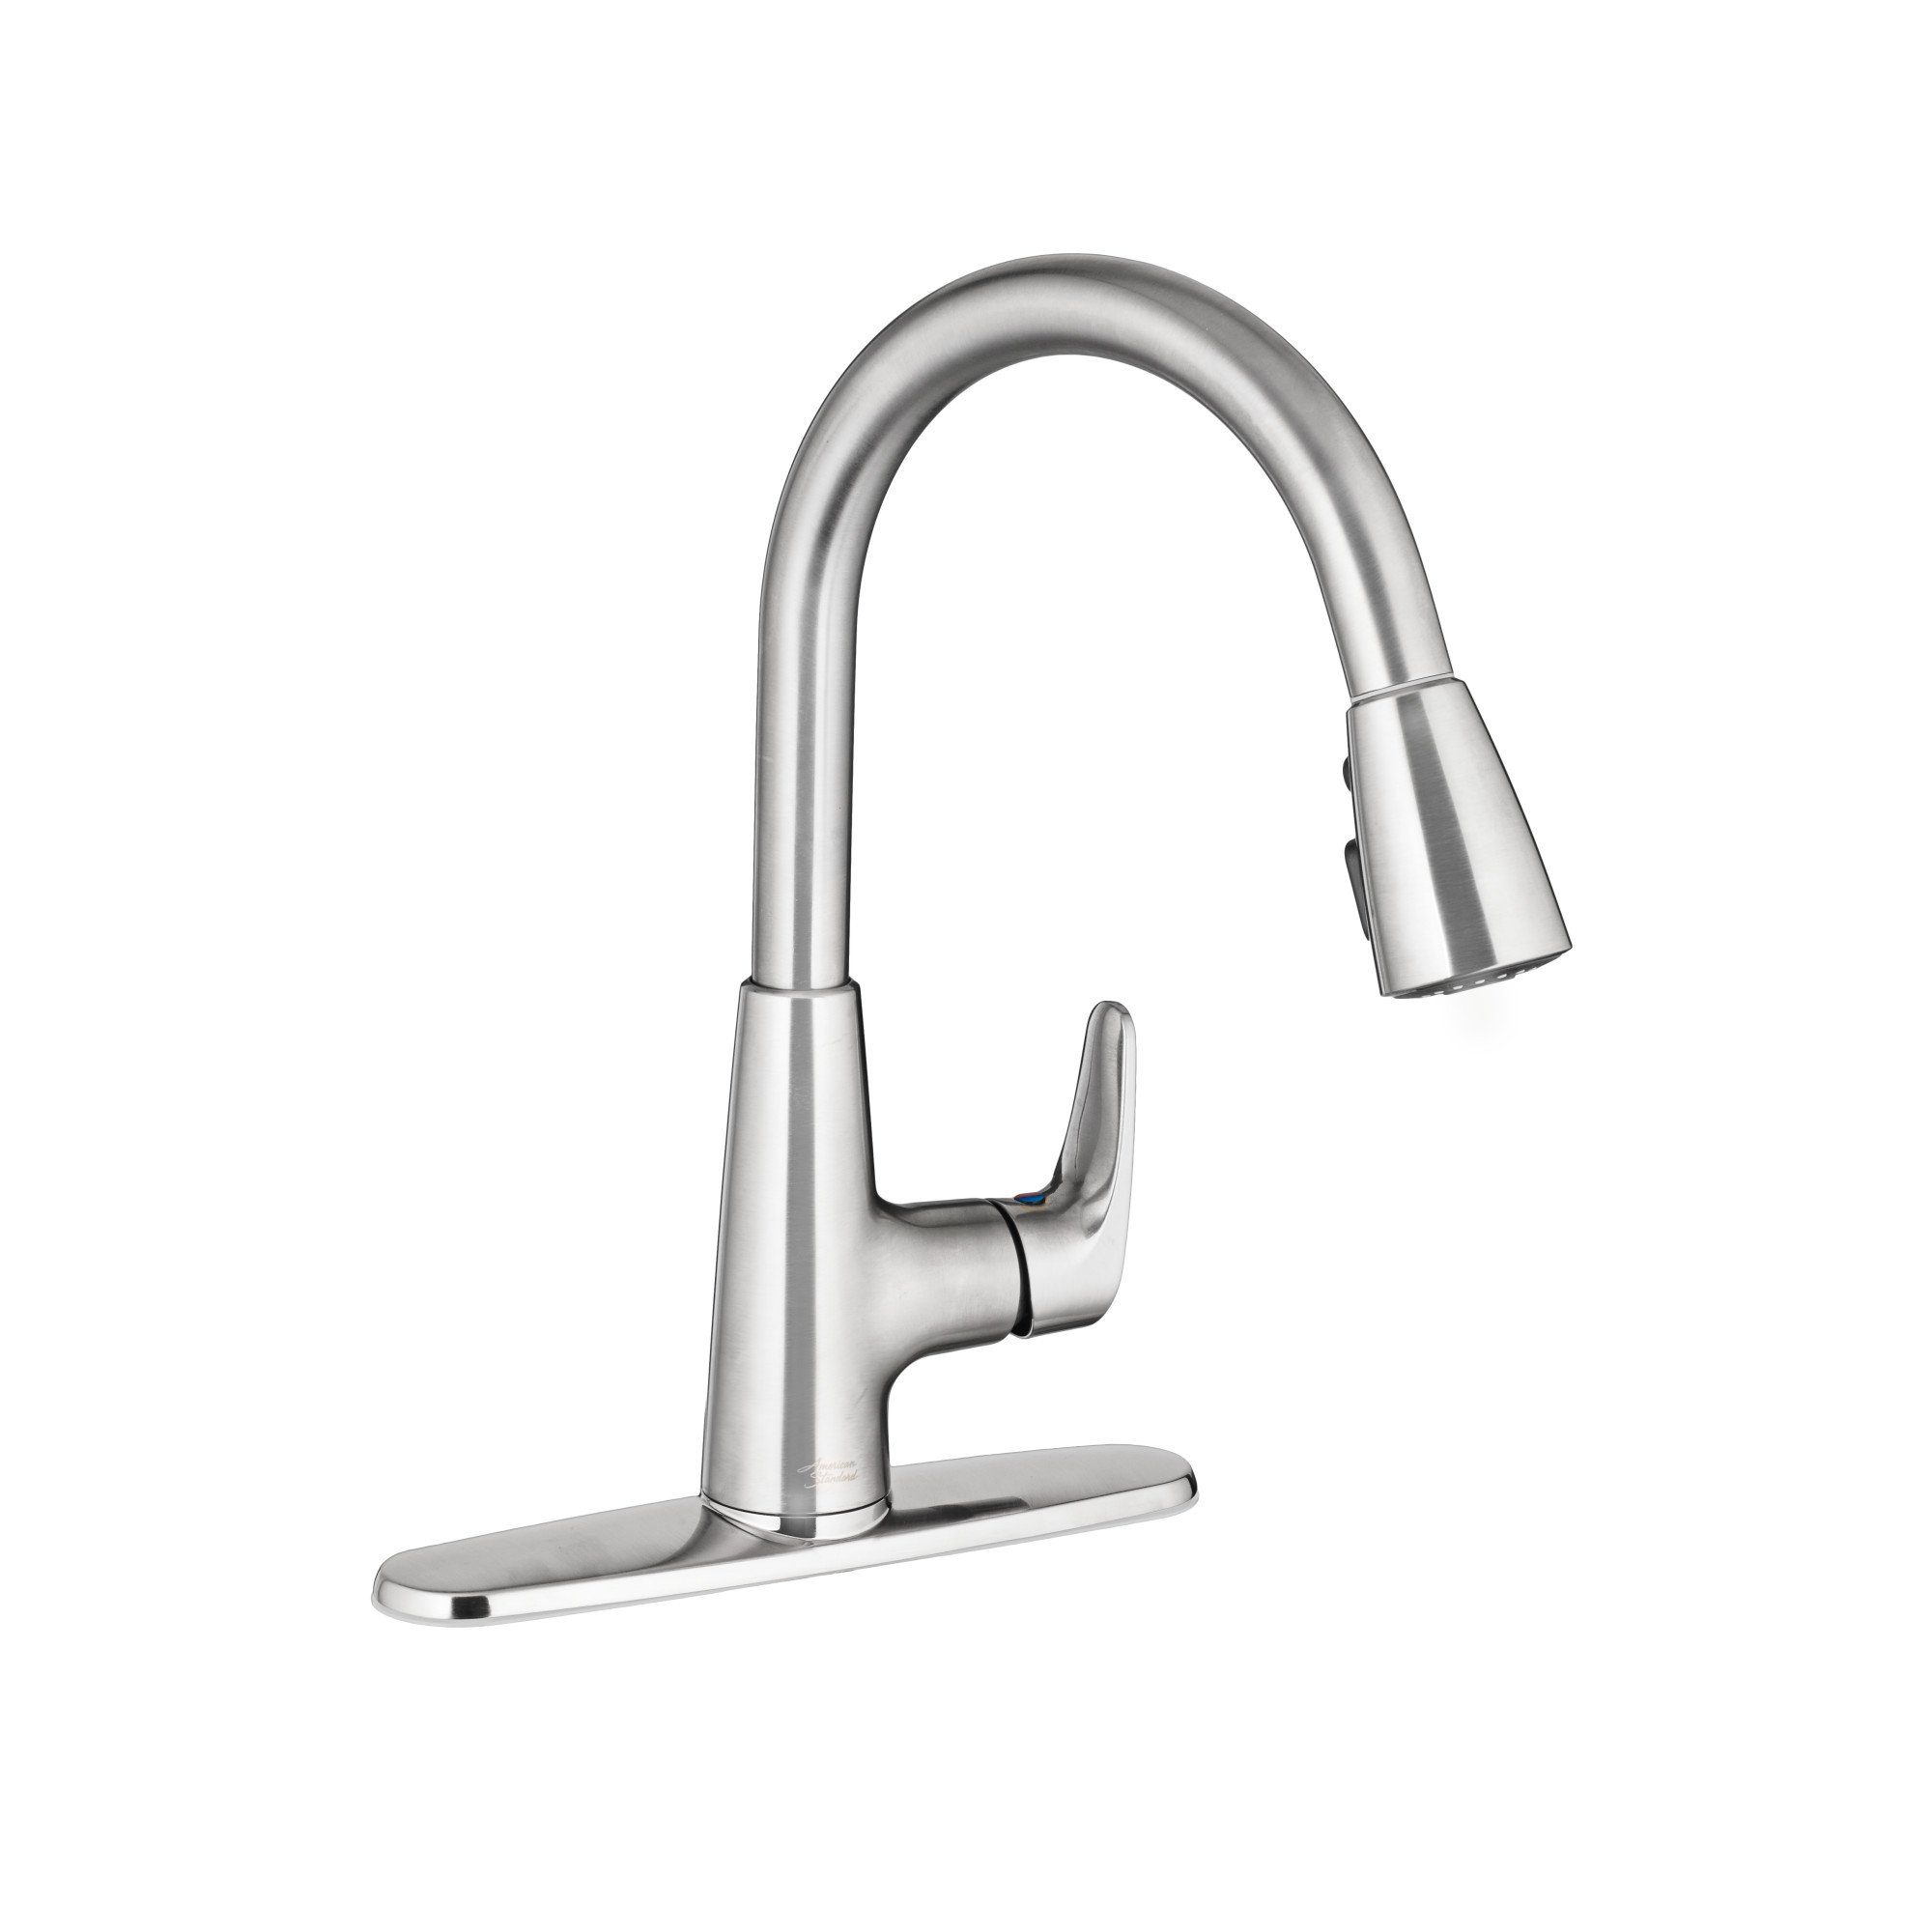 American Standard 7074300.075 Colony Pro Single-Handle Kitchen Faucet with Pull-Down Spray, Stainless Steel